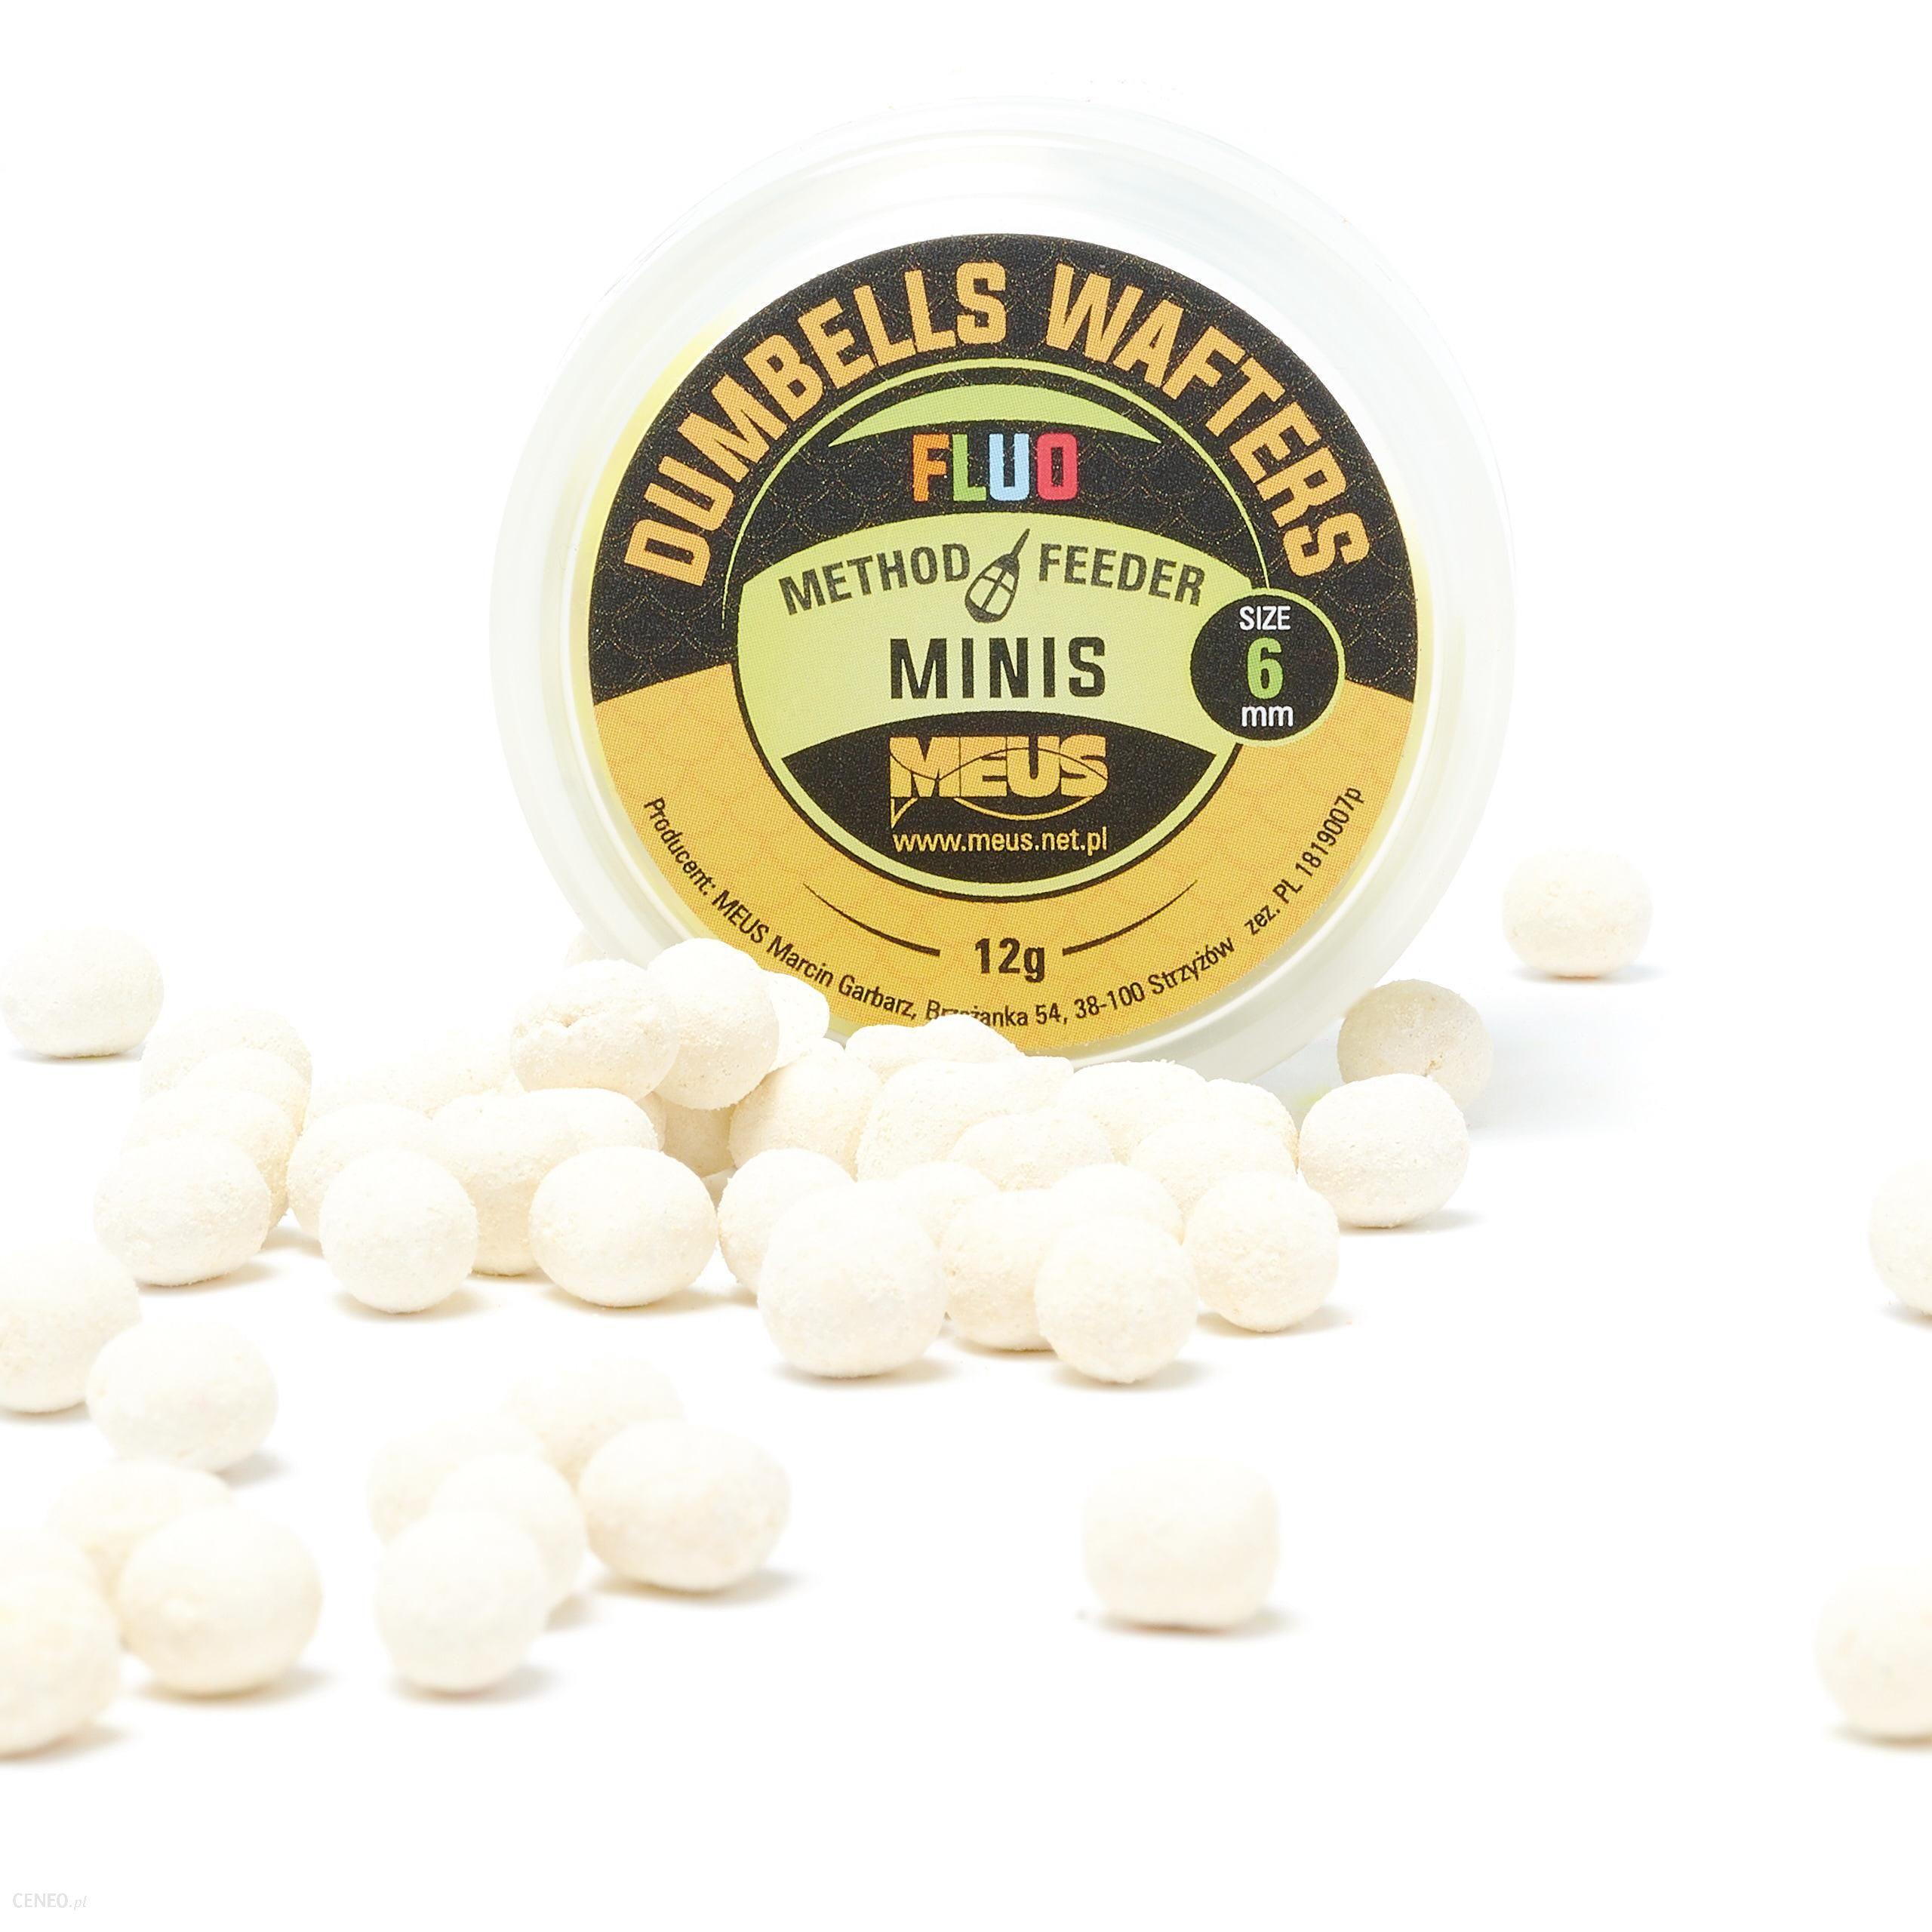 Meus Dumbells Fluo Wafters 6Mm N-Butyric Acid Minis